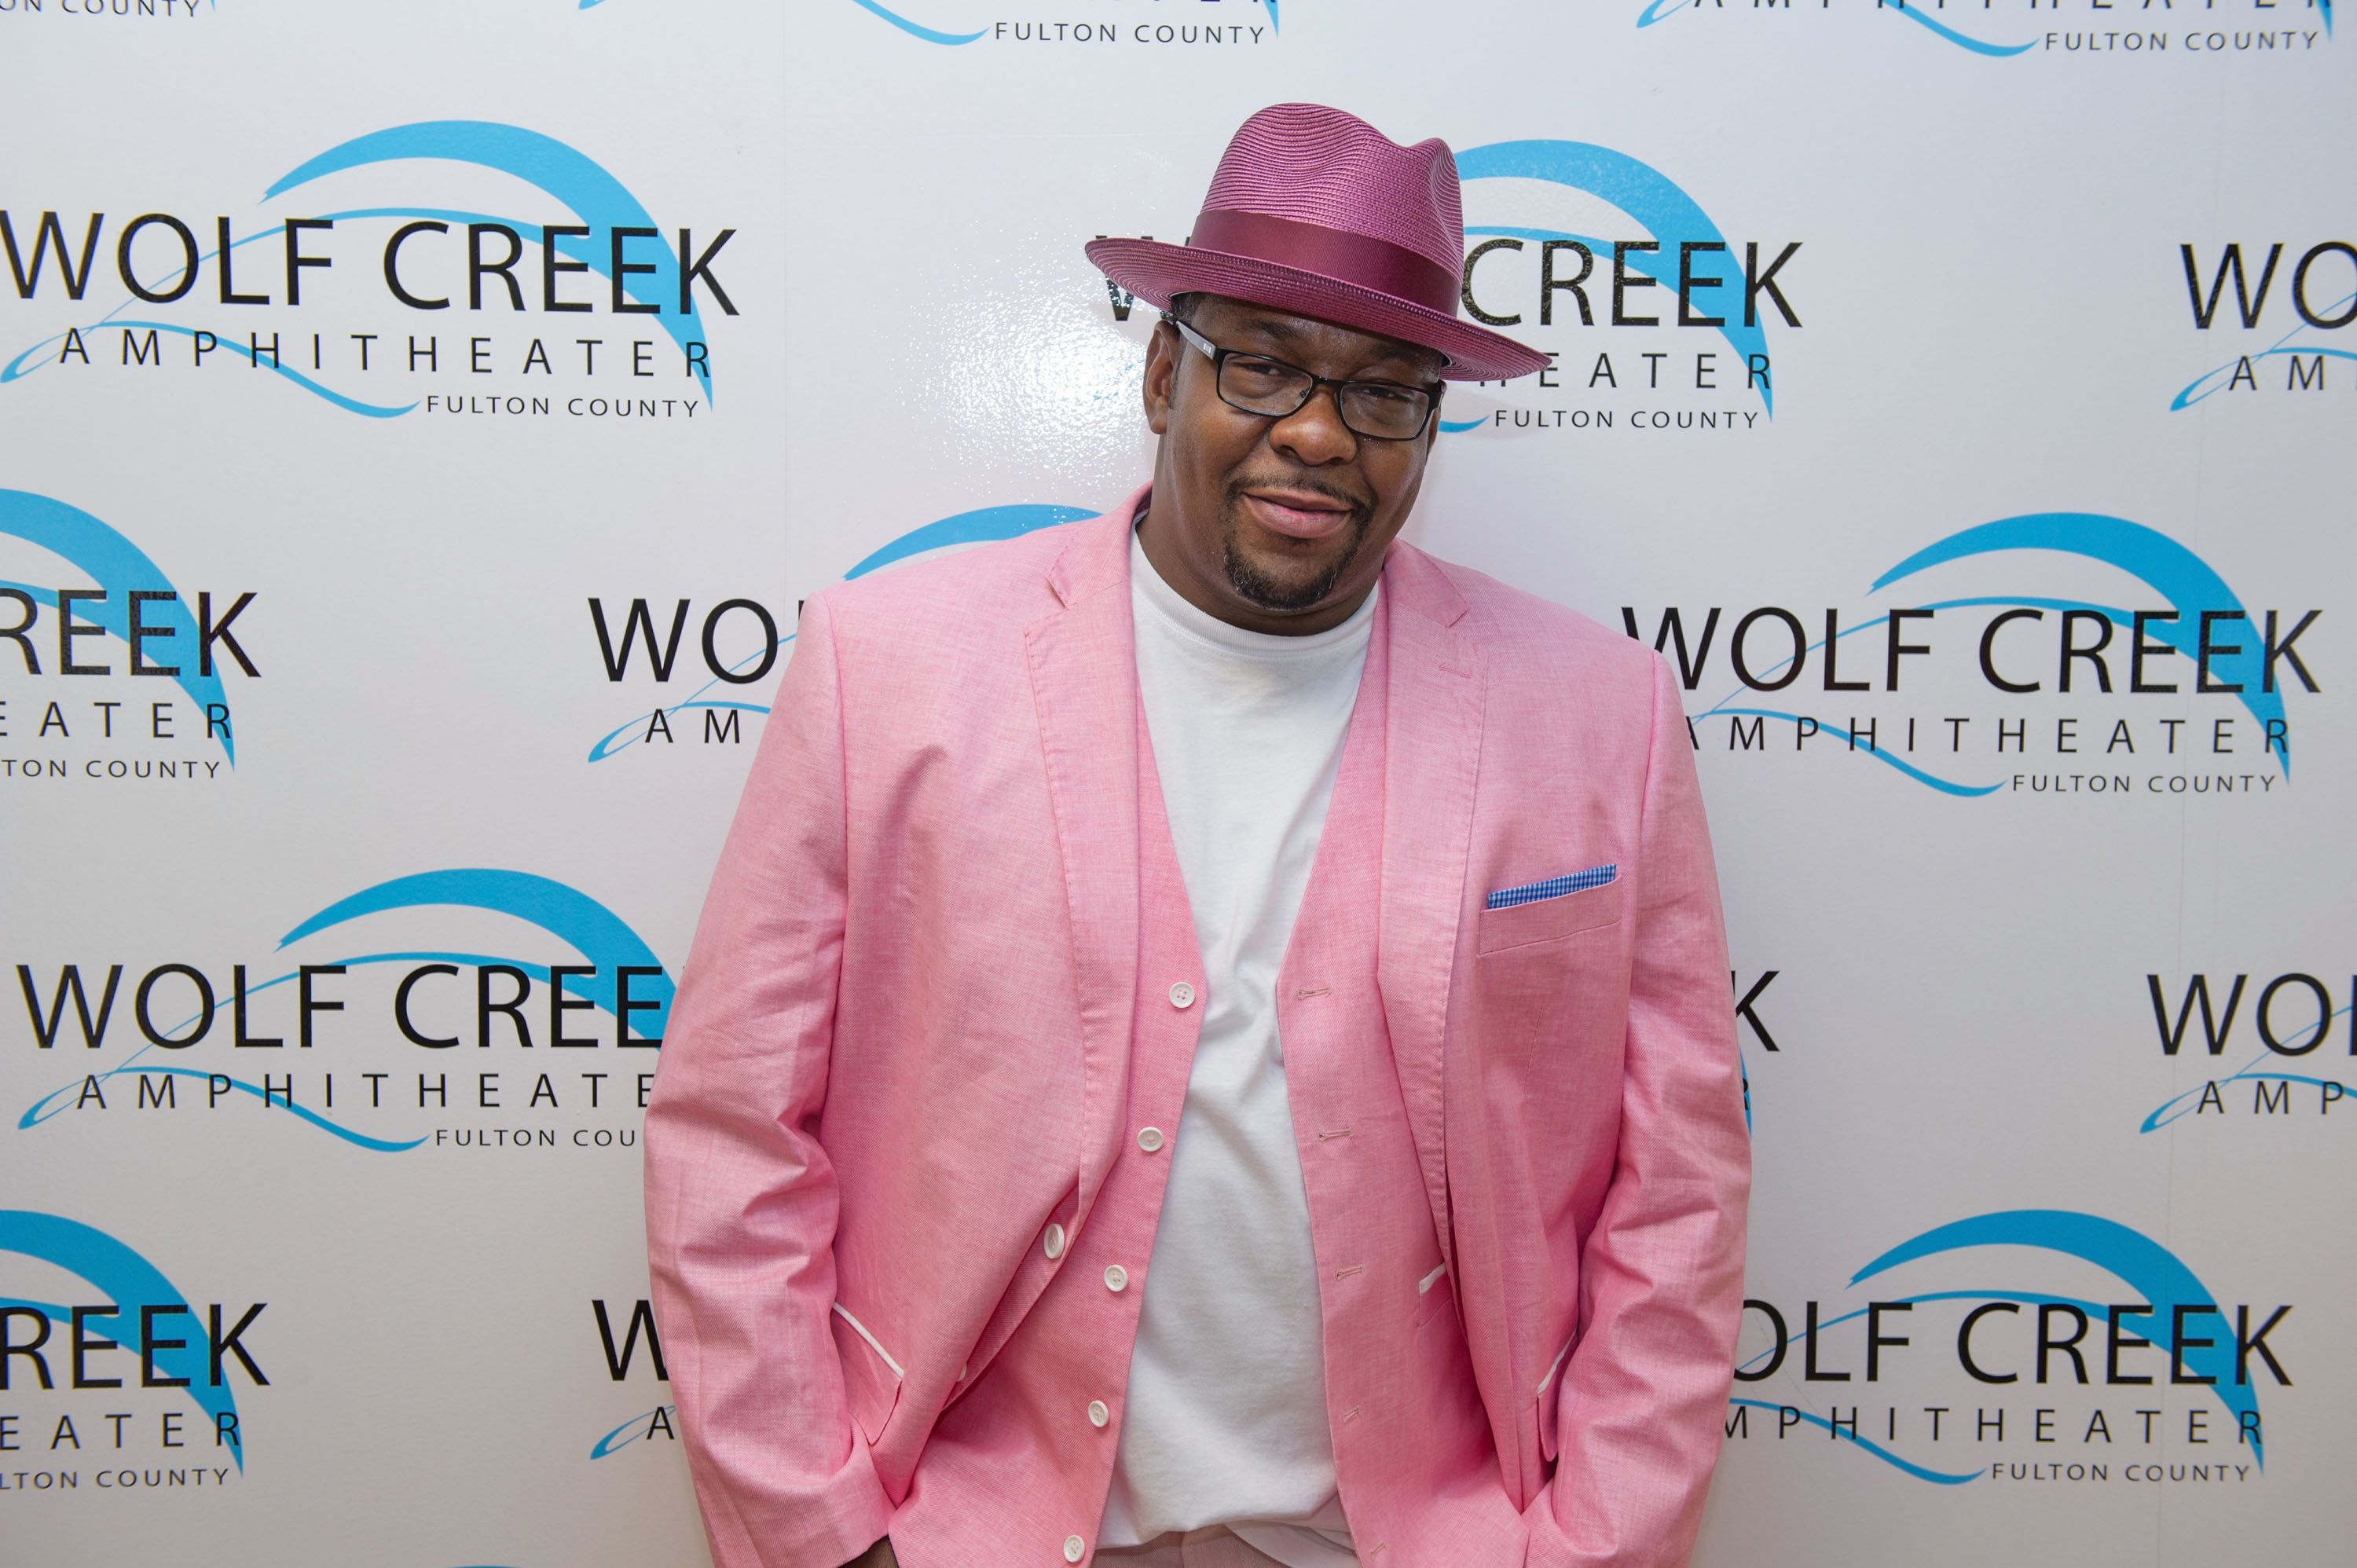 ATLANTA, GA - JULY 04:  Recording artist Bobby Brown attends the Affordable Old School Concert Series featuring Bobby Brown, Mint Condition, Juvenile, 8 Ball & MLG, Tweet And J.J. Williamson at Wolf Creek Amphitheater on July 4, 2015 in Atlanta, Georgia.  (Photo by Marcus Ingram/Getty Images)